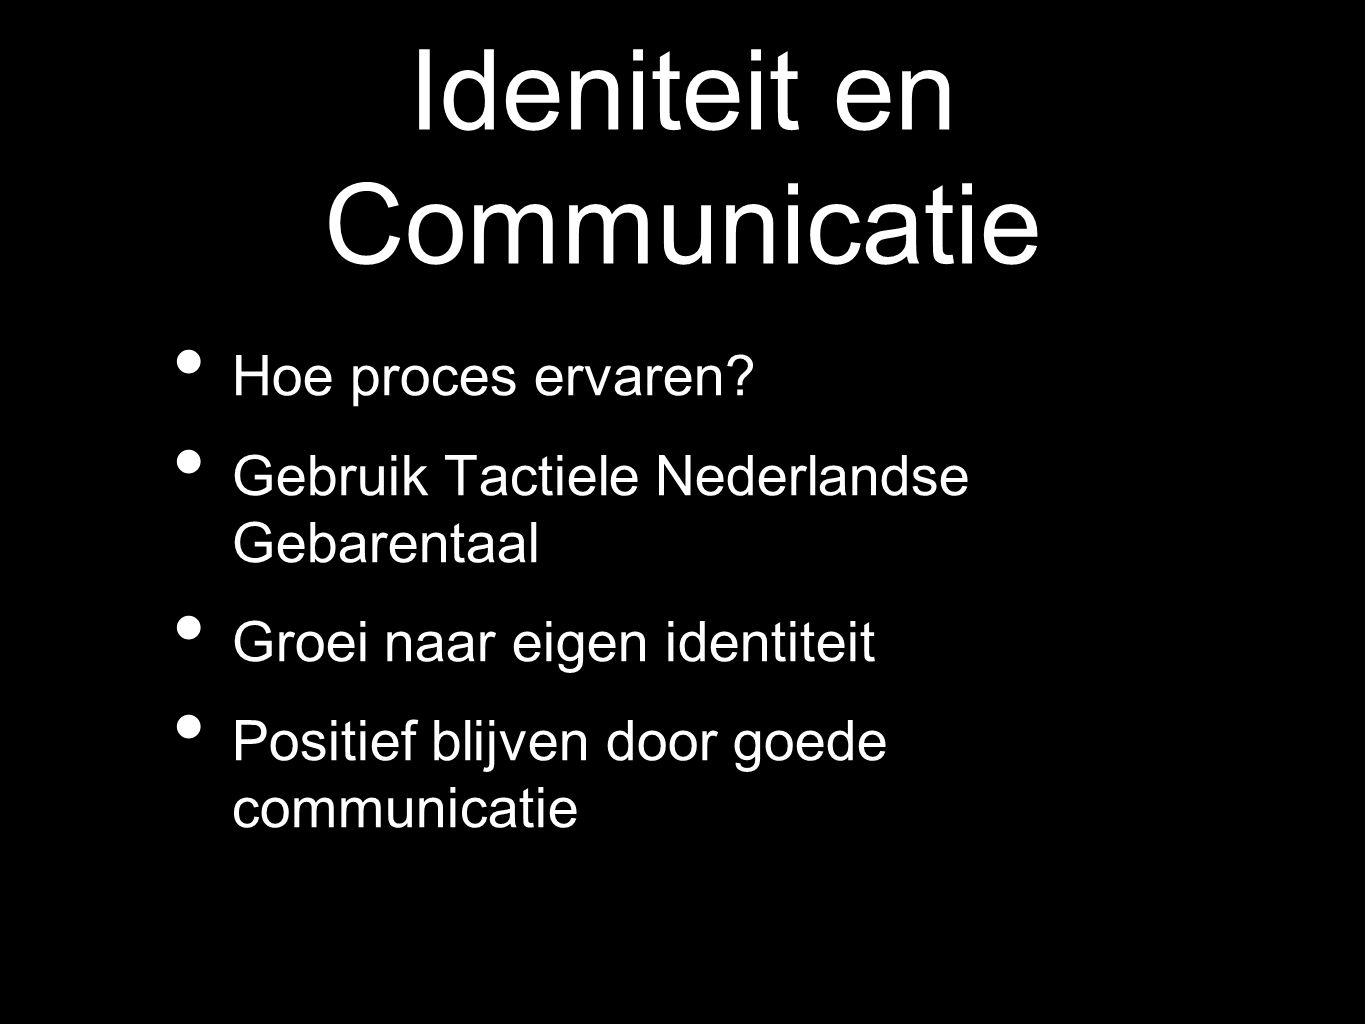 Ideniteit en Communicatie